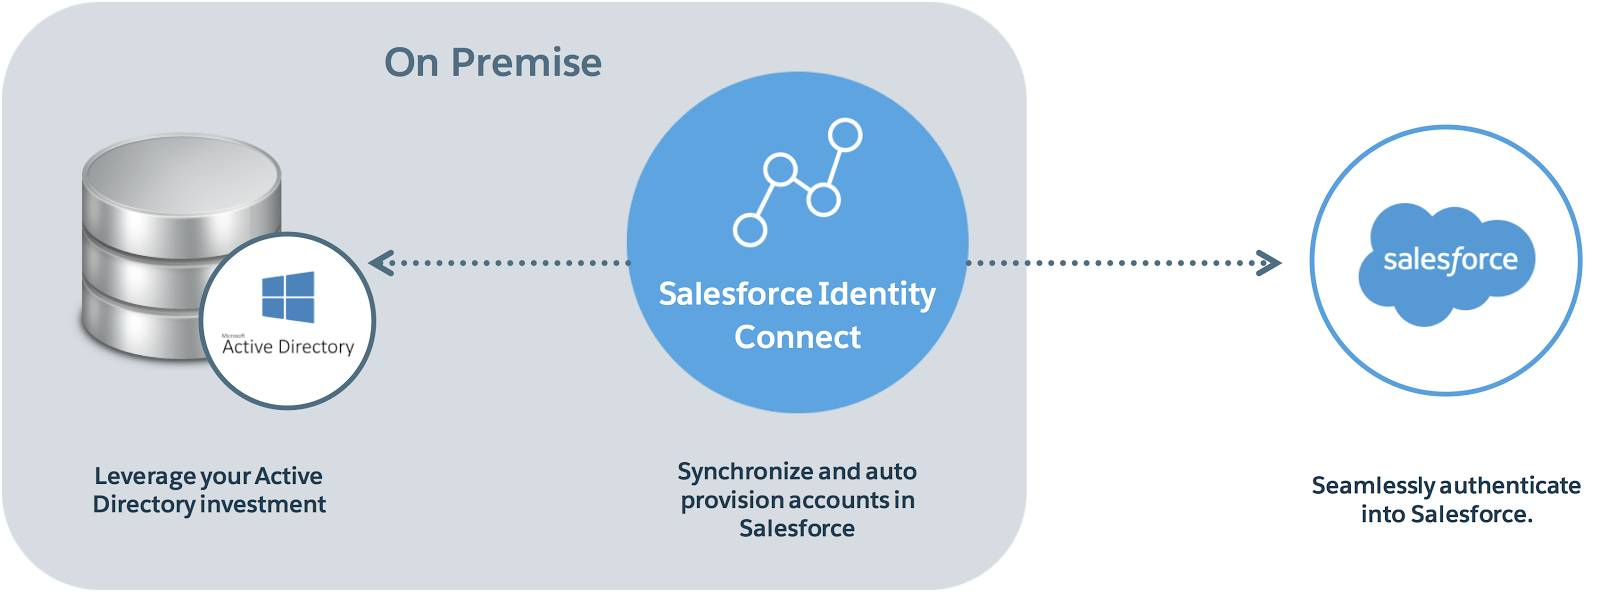 A circle labeled Salesforce Identity Connect, with an arrow pointing toward a Microsoft Active Directory server, and another arrow pointing to Salesforce to show how Salesforce Identity Connect synchronizes accounts across systems